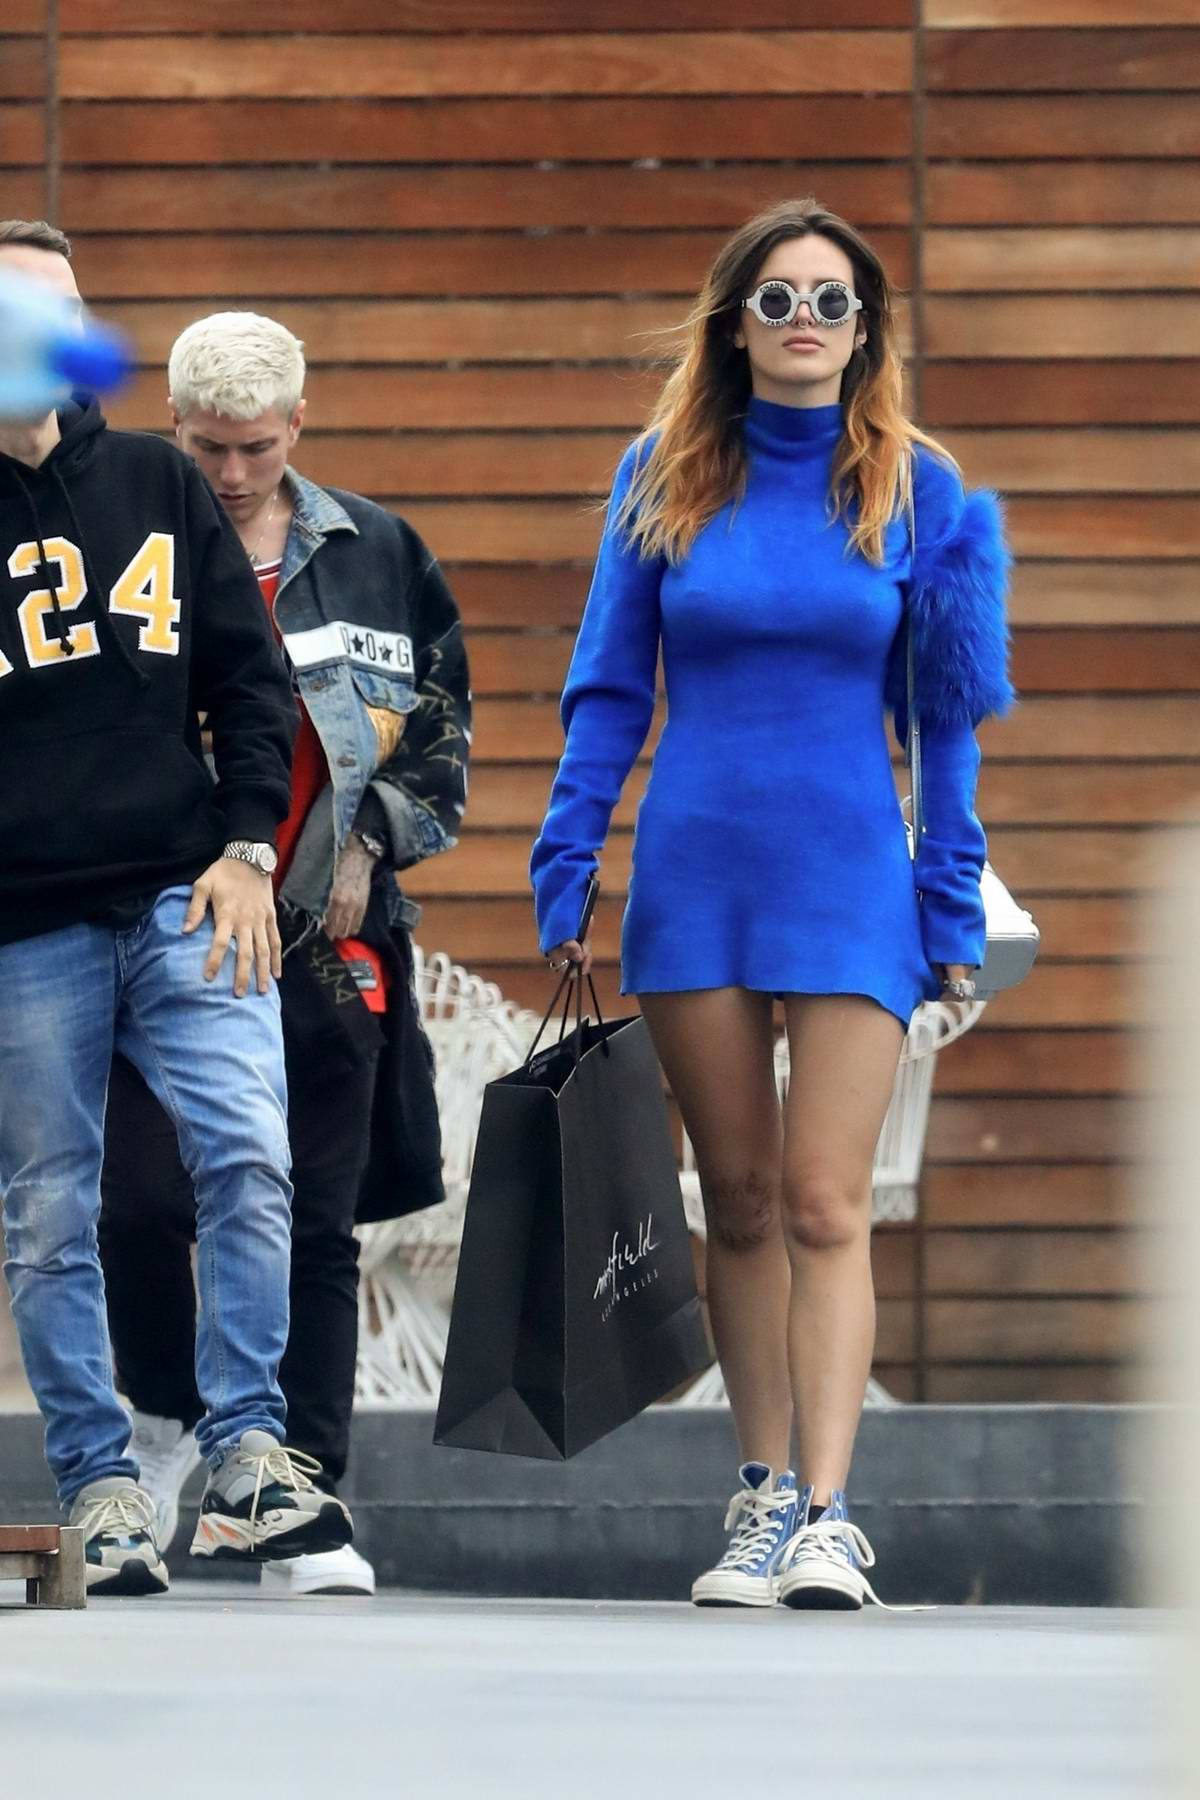 Bella Thorne rocks a blue mini-dress and Chanel sunglasses while out shopping at Maxfield with Benjamin Mascolo in Los Angeles